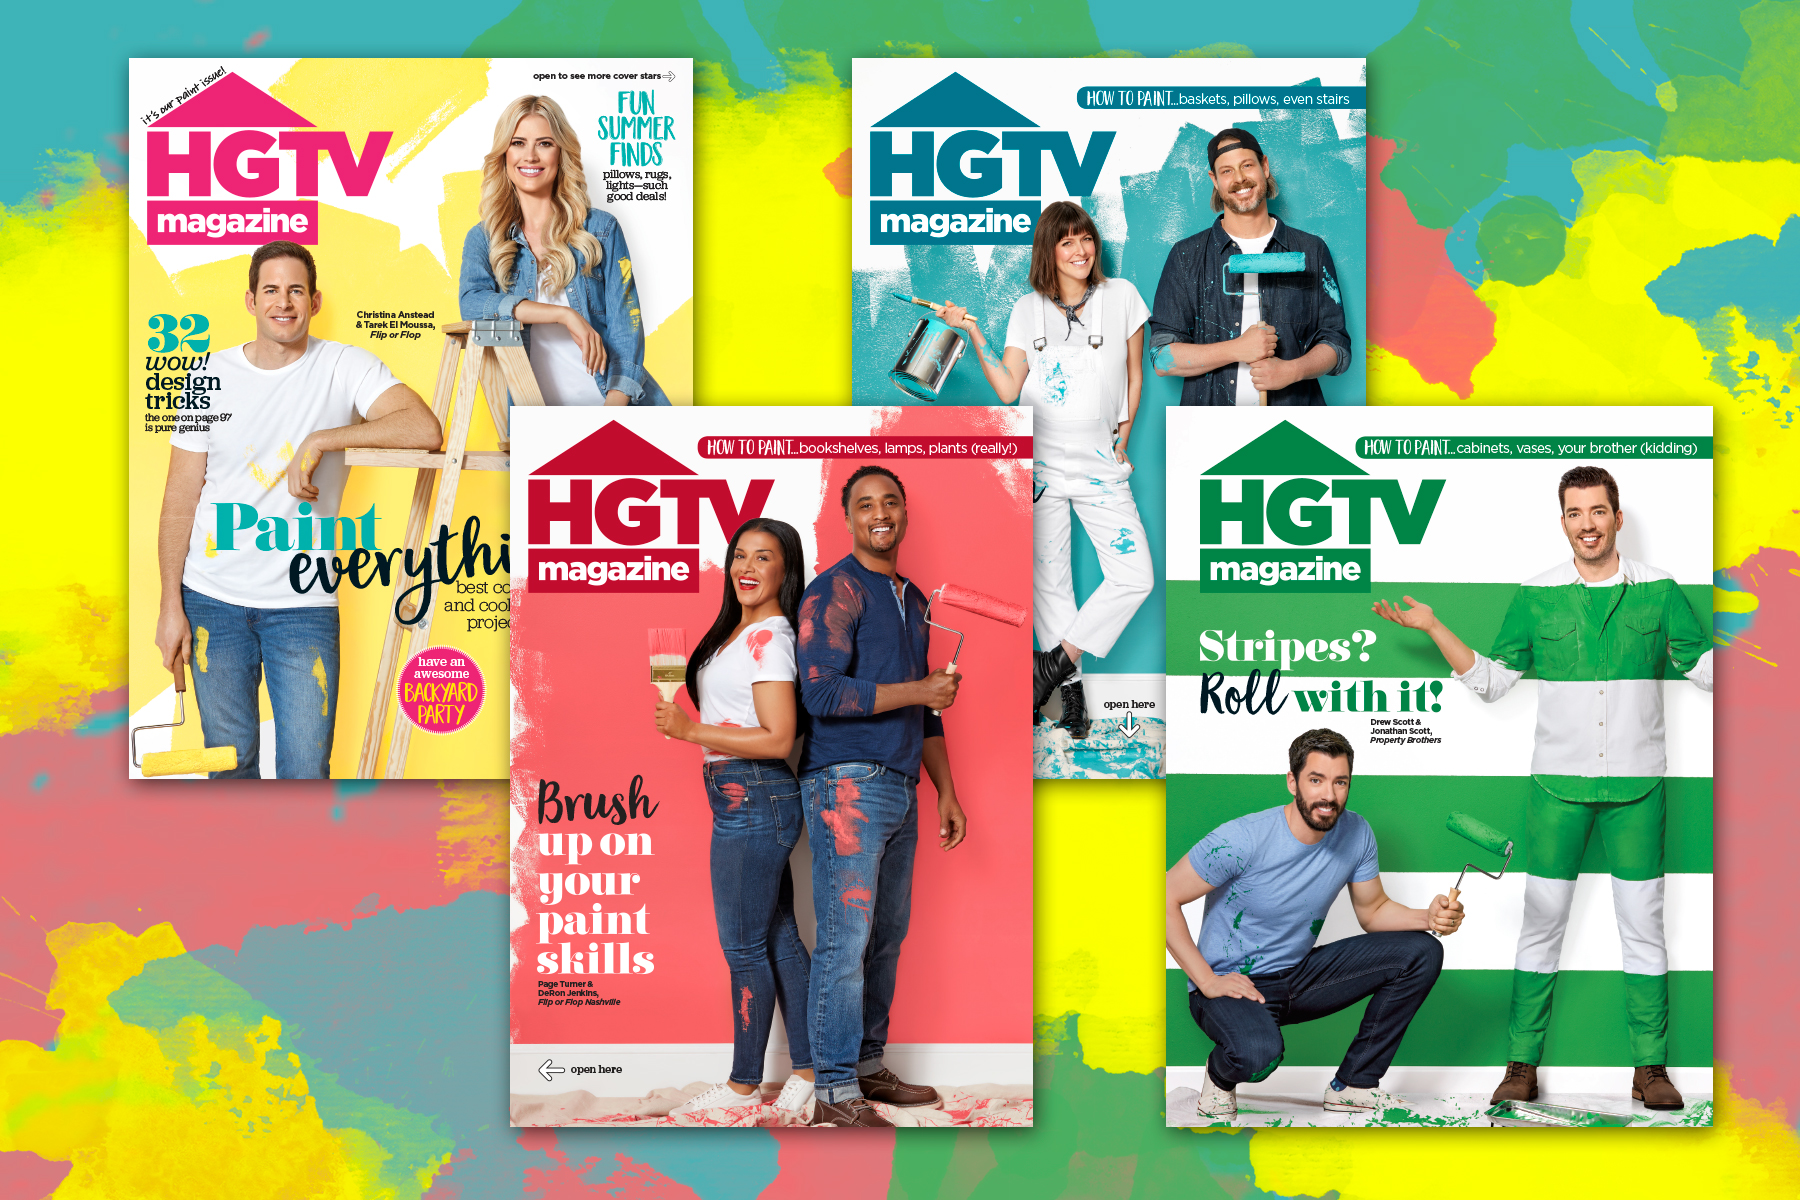 HGTV stars get their own collectible covers, the New York Post obsesses about AOC, Conde Nast diversifies: Publisher's Brief